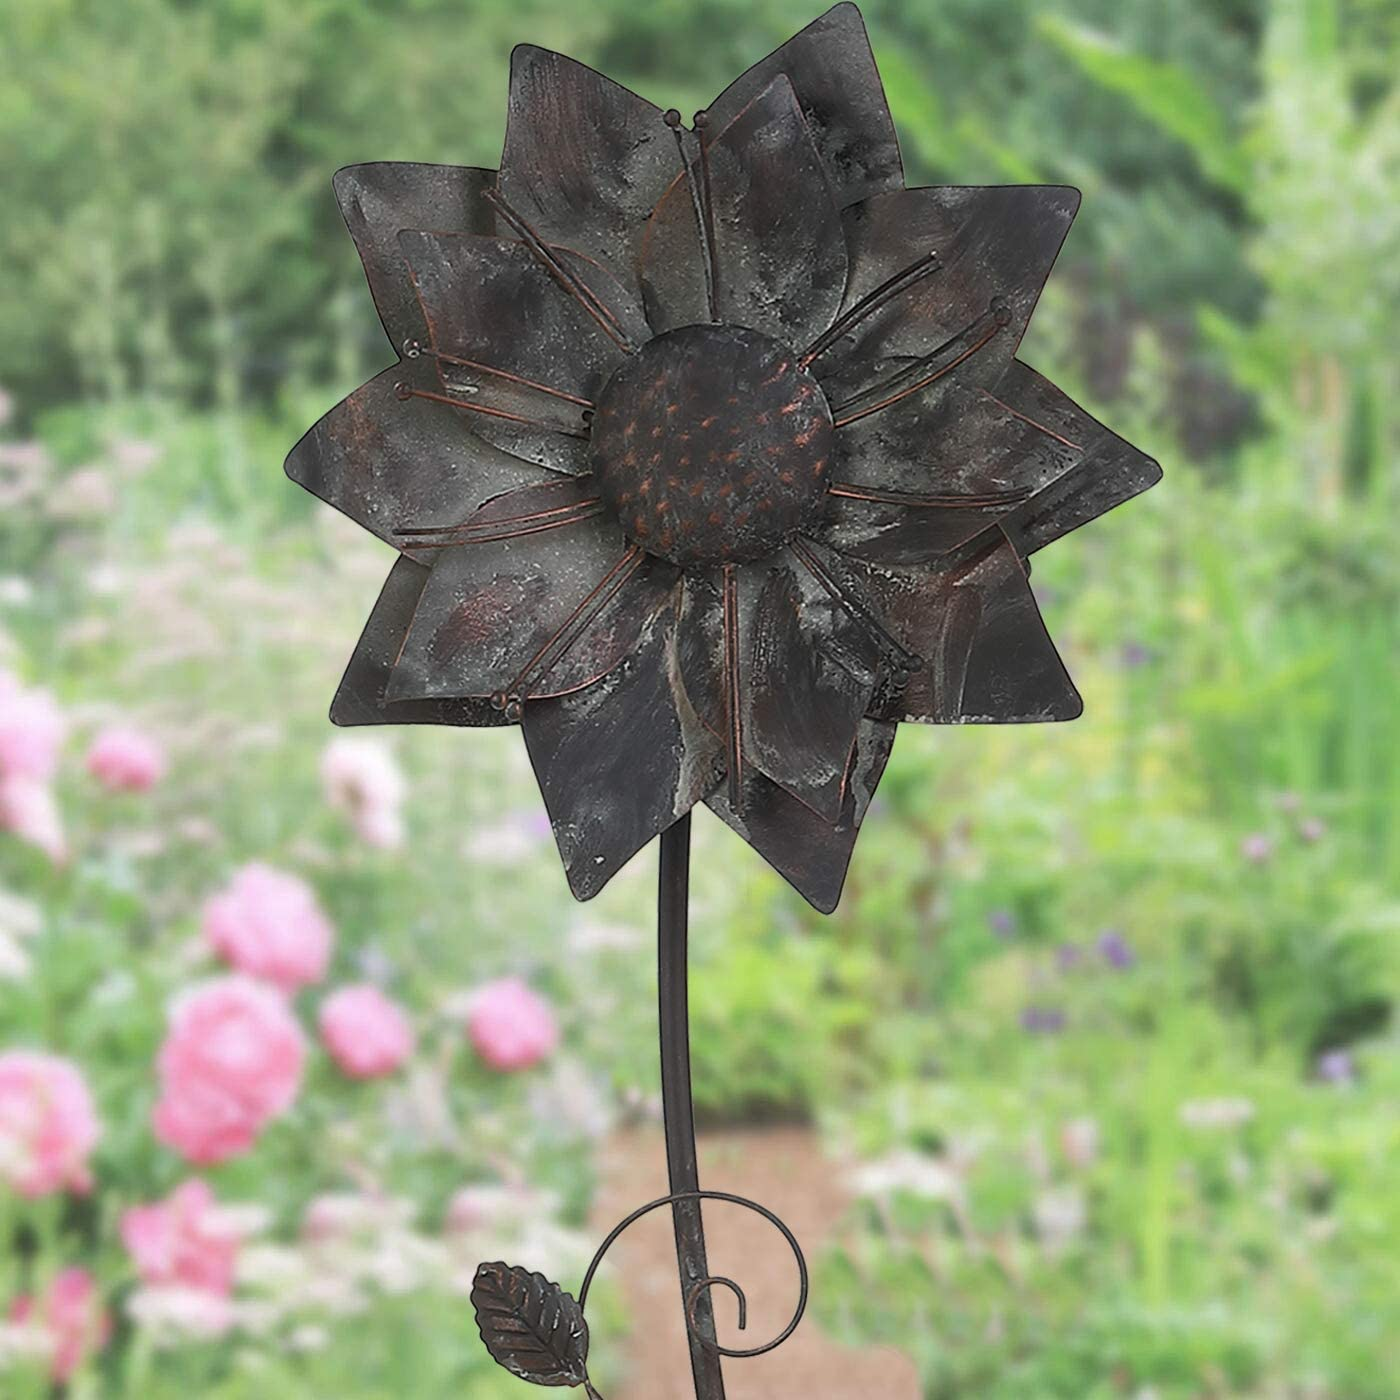 "Brogan 11"" W Large Metal Flower Garden Stakes, Decorative Outdoor Lawn Yard Patio Floral Stake Art, Butterfly and Leaves Detailed (Washed Finished) 57"" H"